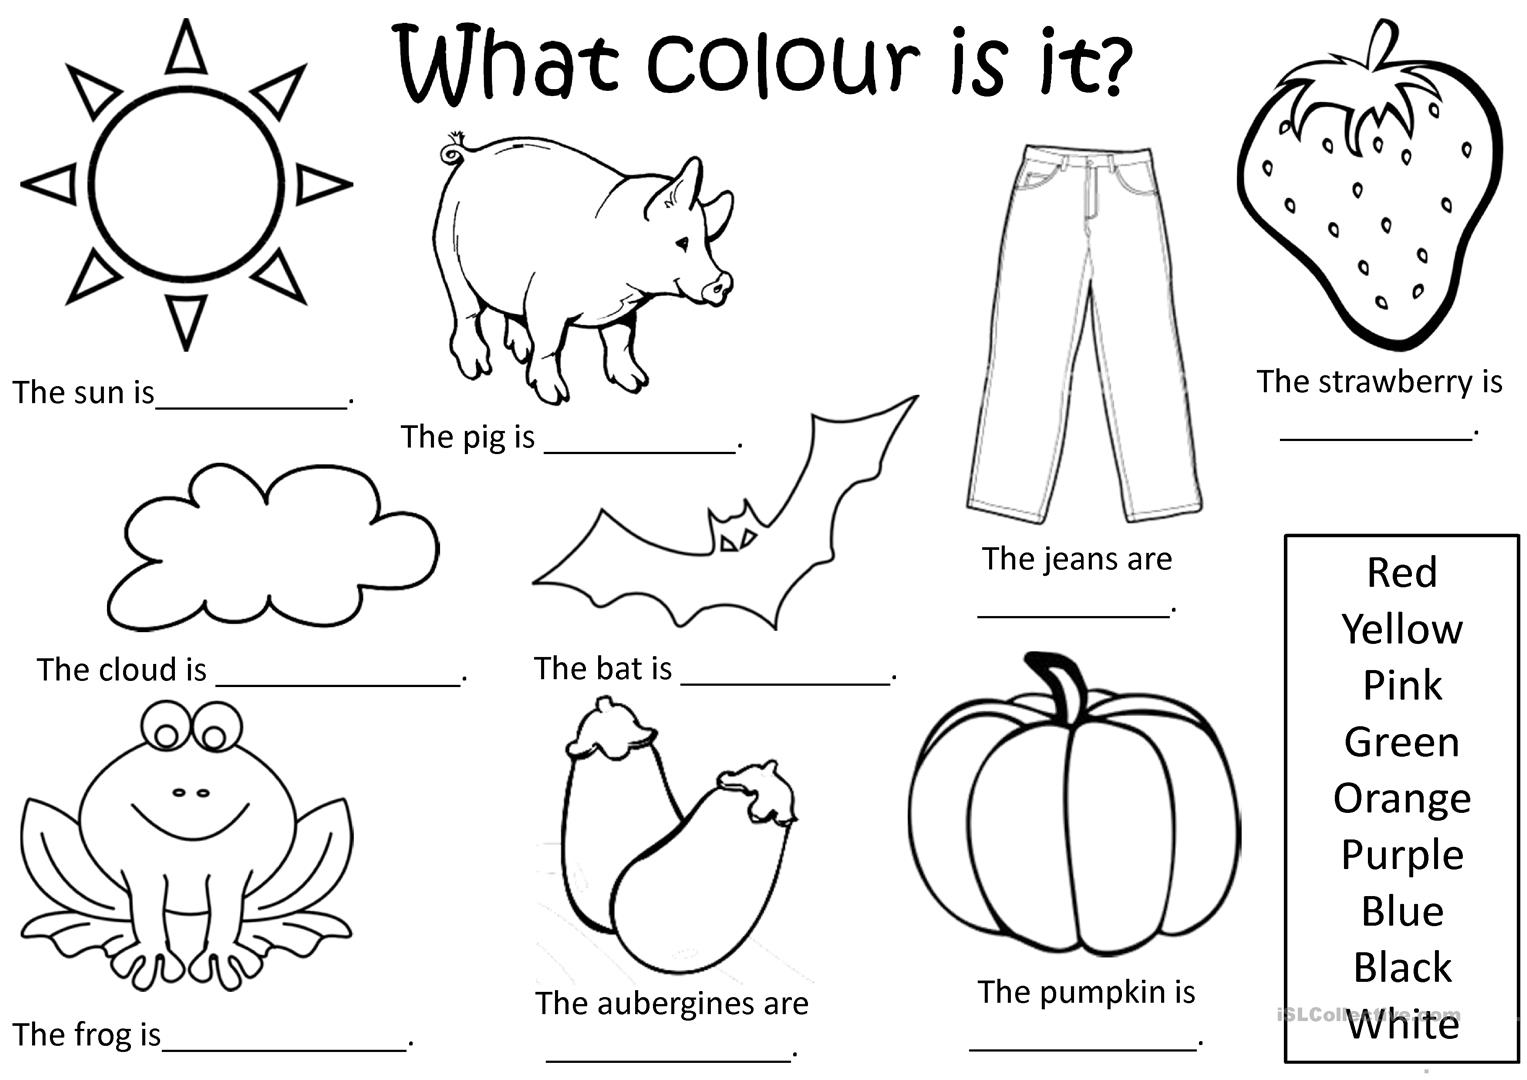 What Colour Is It Worksheet